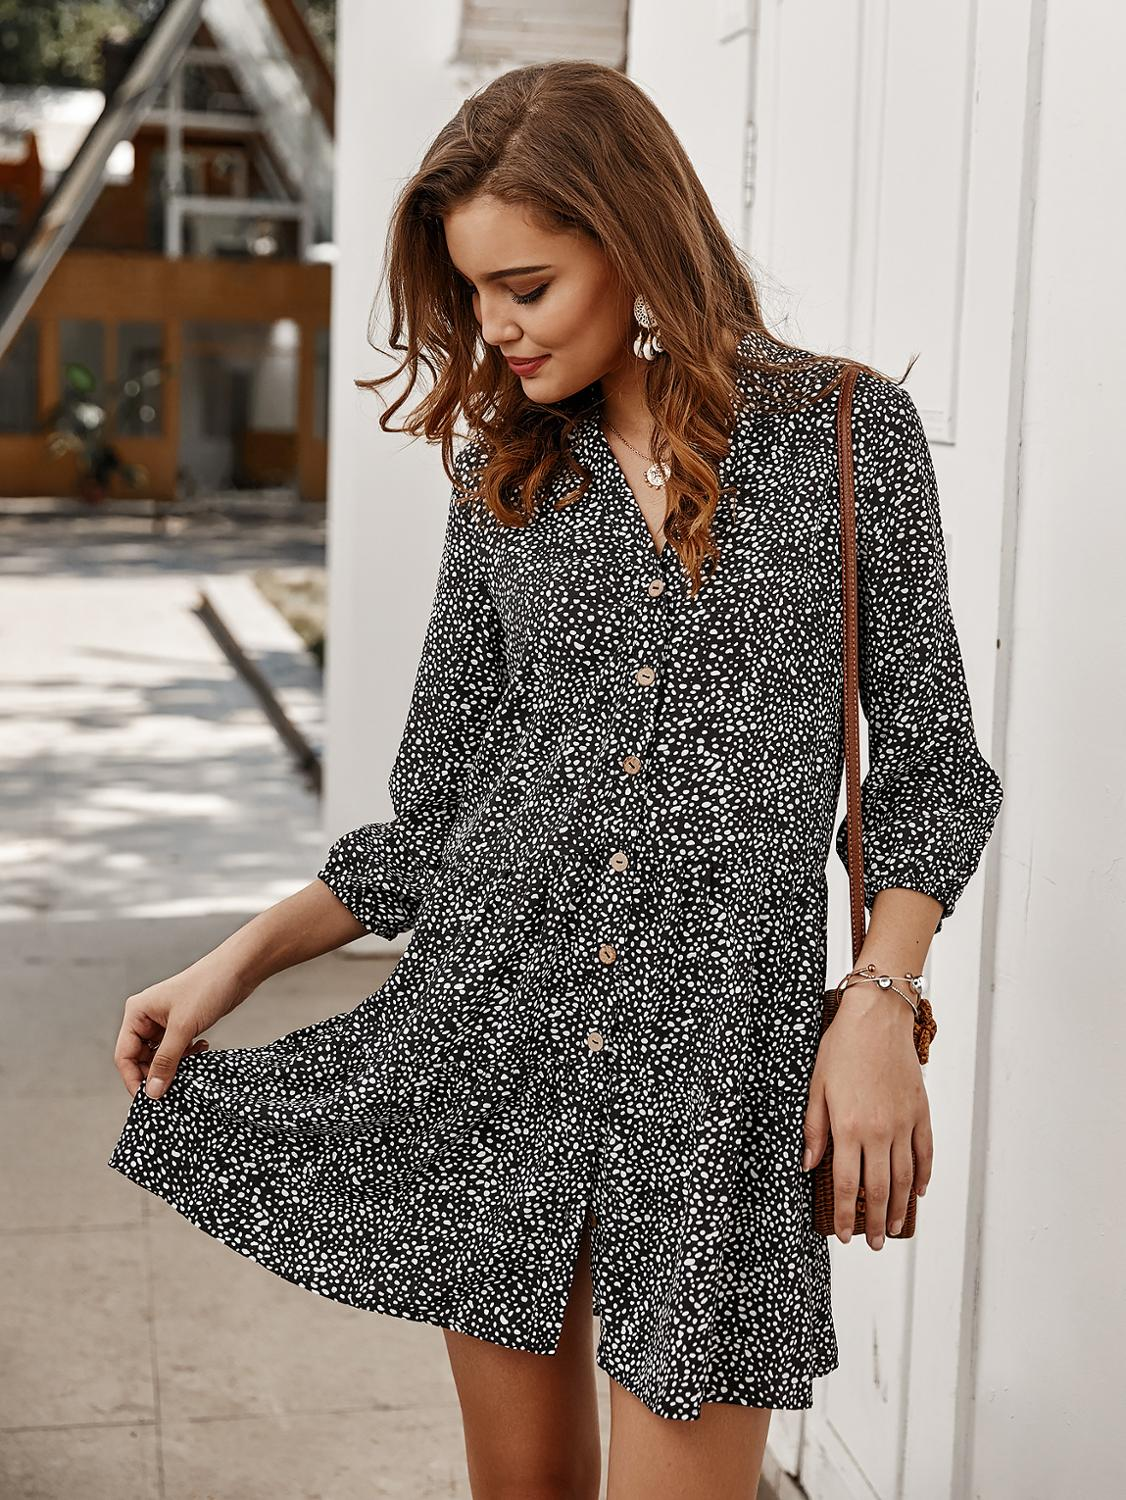 2020 New Women Autumn Small Floral <font><b>Dress</b></font> Button Short Cropped Sleeve <font><b>Dress</b></font> Female Casual Mini Party <font><b>Dresses</b></font> image